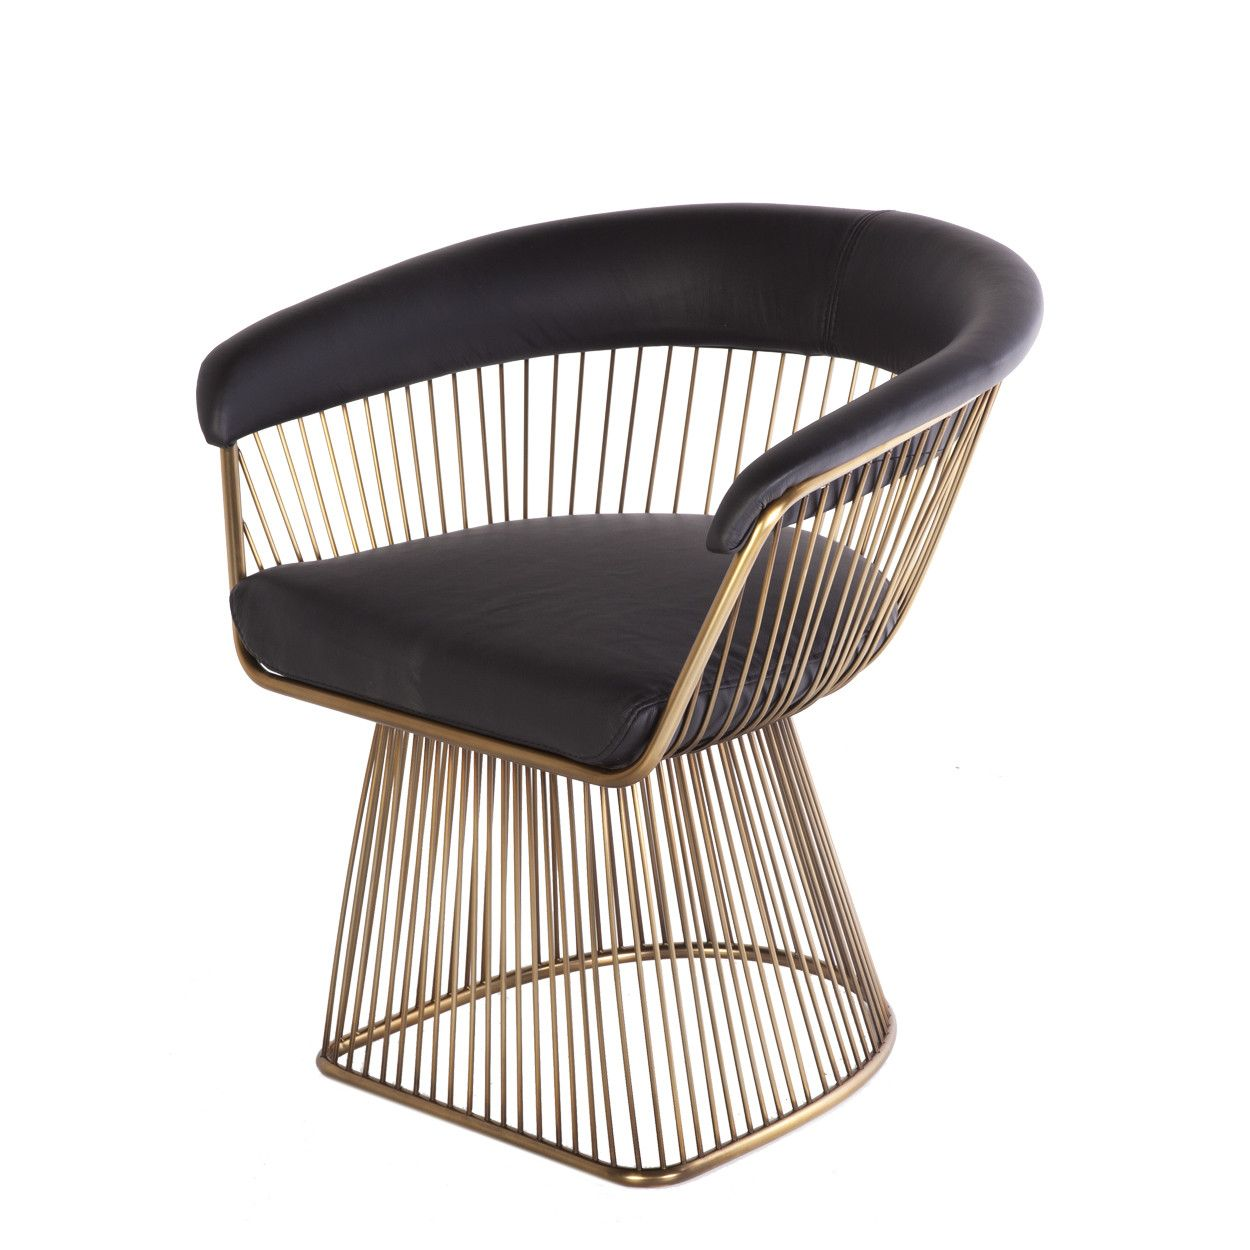 Tremendous Modern Reproduction Platner Arm Chair Black Leather And Gamerscity Chair Design For Home Gamerscityorg